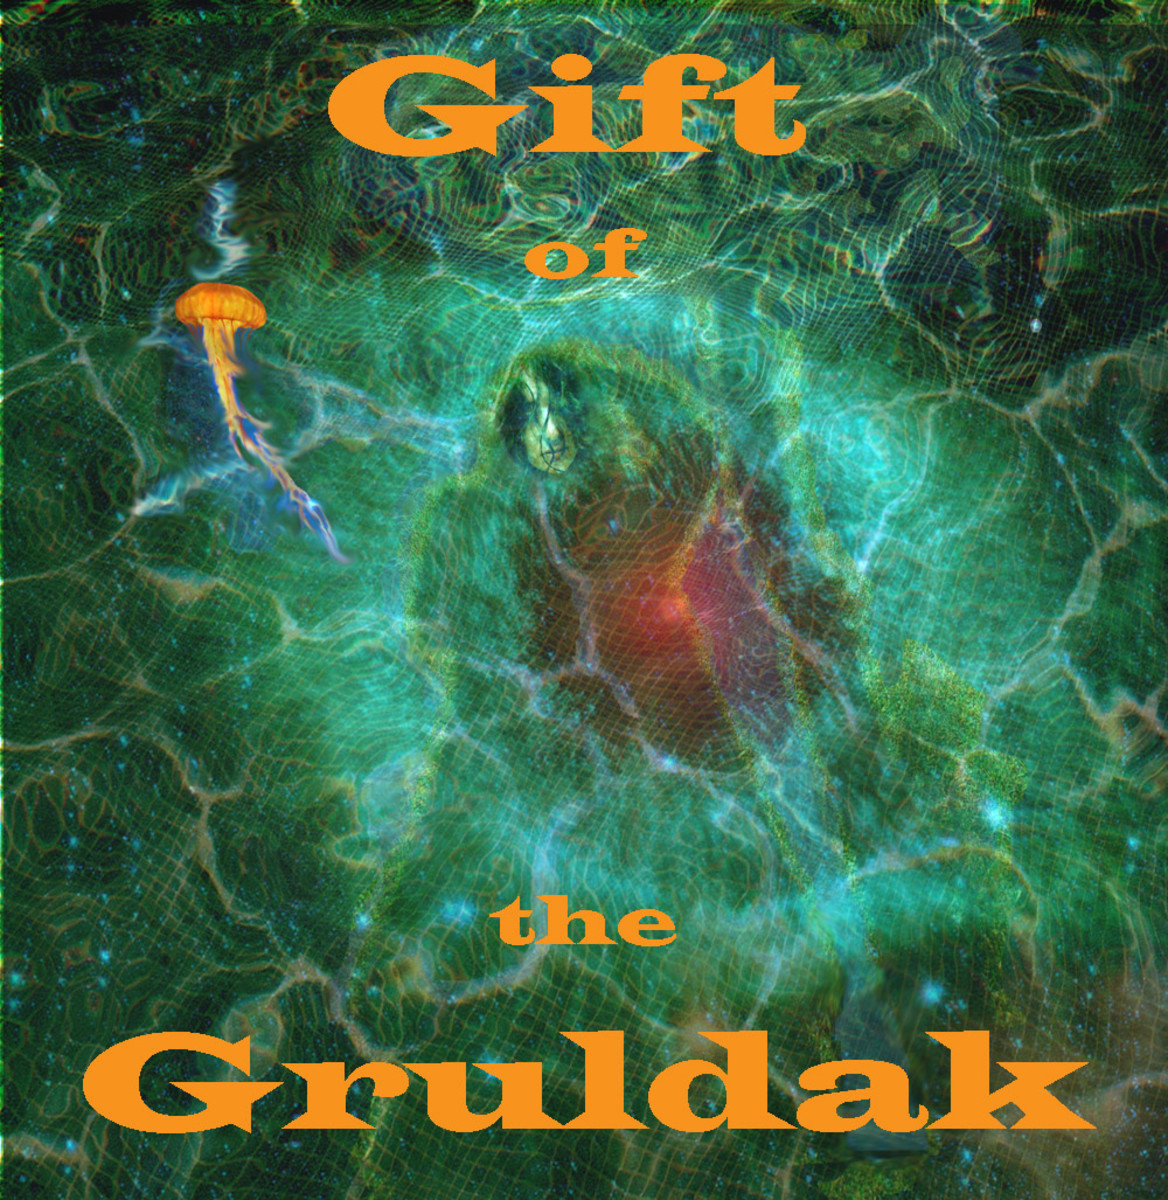 An image from Kevin Capricorn Wang IV's birthplace, the novel, Gift of the Gruldak.